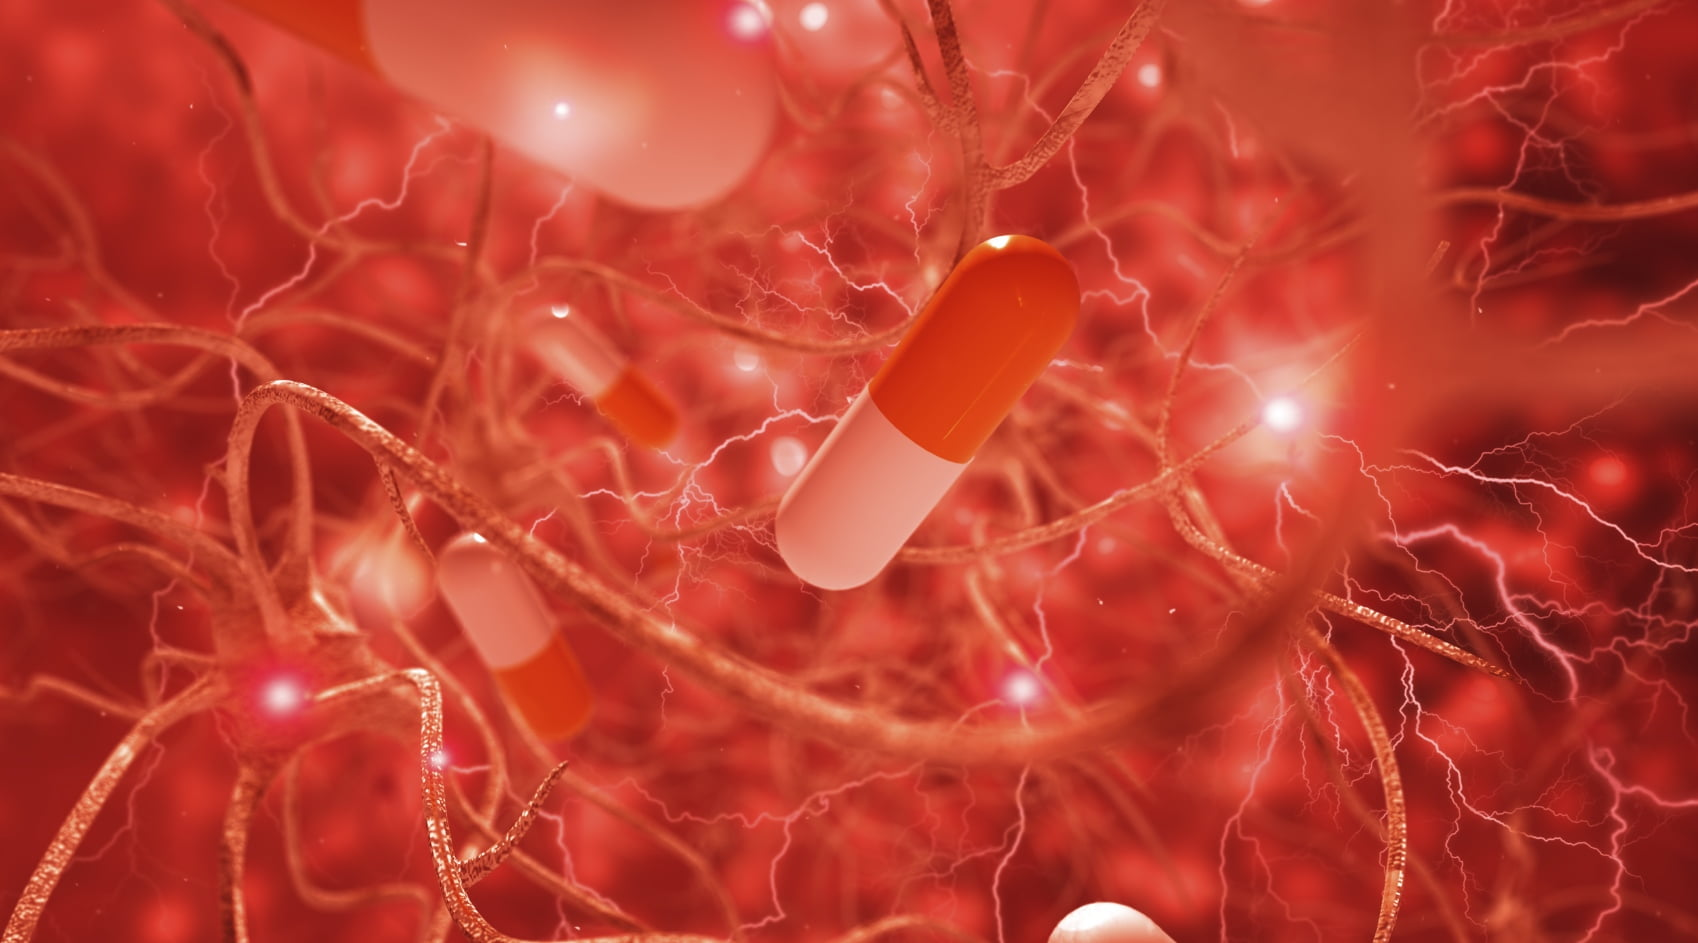 pills and blood vessels